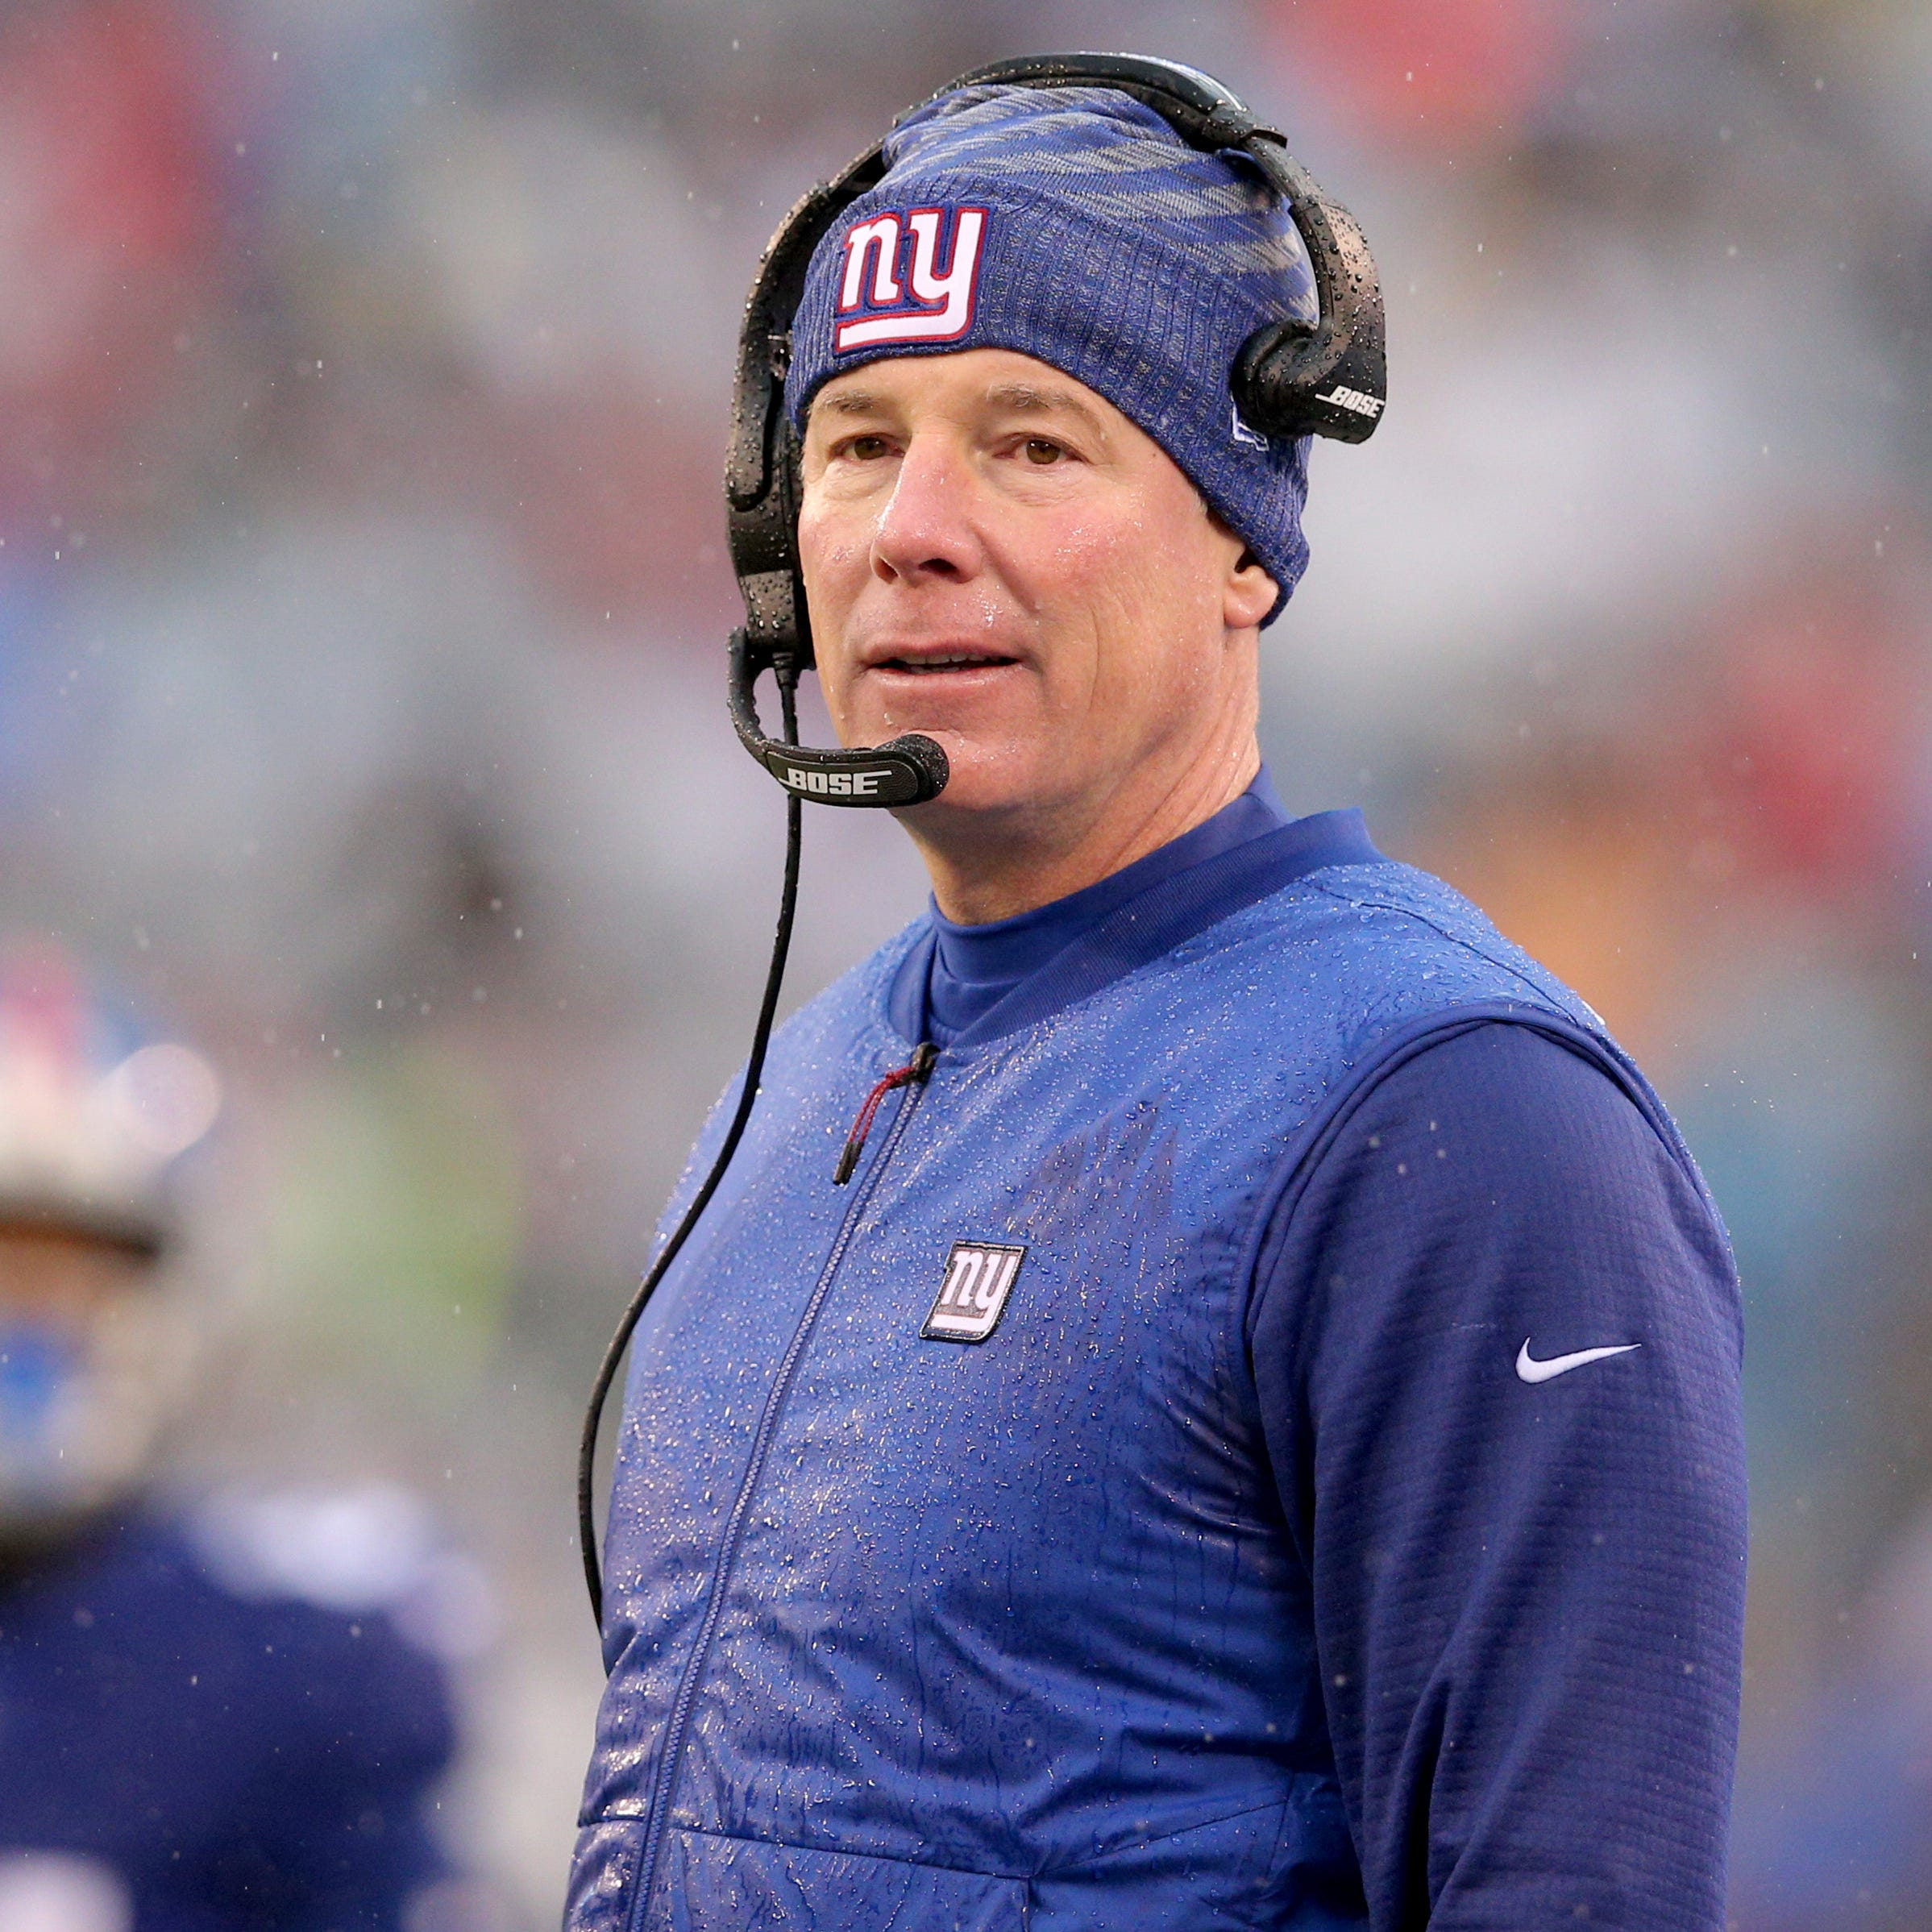 NY Giants: Shurmur deserves credit, even as playoff dream end